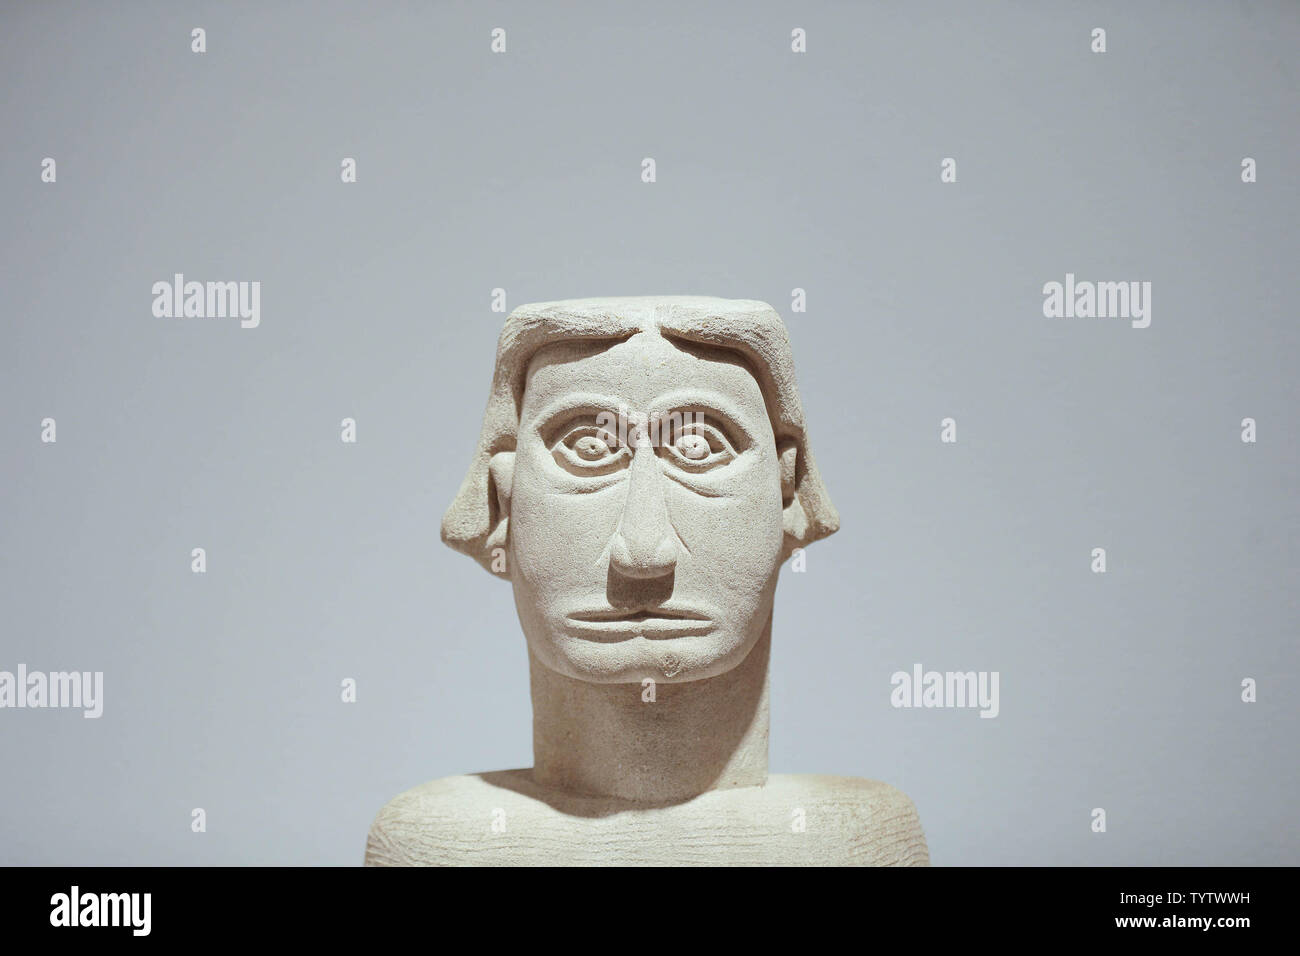 A 20th Century Bust by an unknown artist is on display at a press preview of an upcoming auction titled 'Outsider and Vernacular Art' at Christie's in New York City on January 12, 2019. The auction featuring Henry Darger's '148 At Jennie Richee During fury of storm are unsuccessfully attached (sic) by Glandelinians / 149 At Jennie Richee narrowly escape capture but Blengins come to rescue, double sided' , estd $250,000 - $500,000 and Bill Traylor's 'Goat, Camel, Lion and Figures', estd $75,000 - $100,000 takes place at Christie's on January 18th.     Photo by John Angelillo/UPI - Stock Image